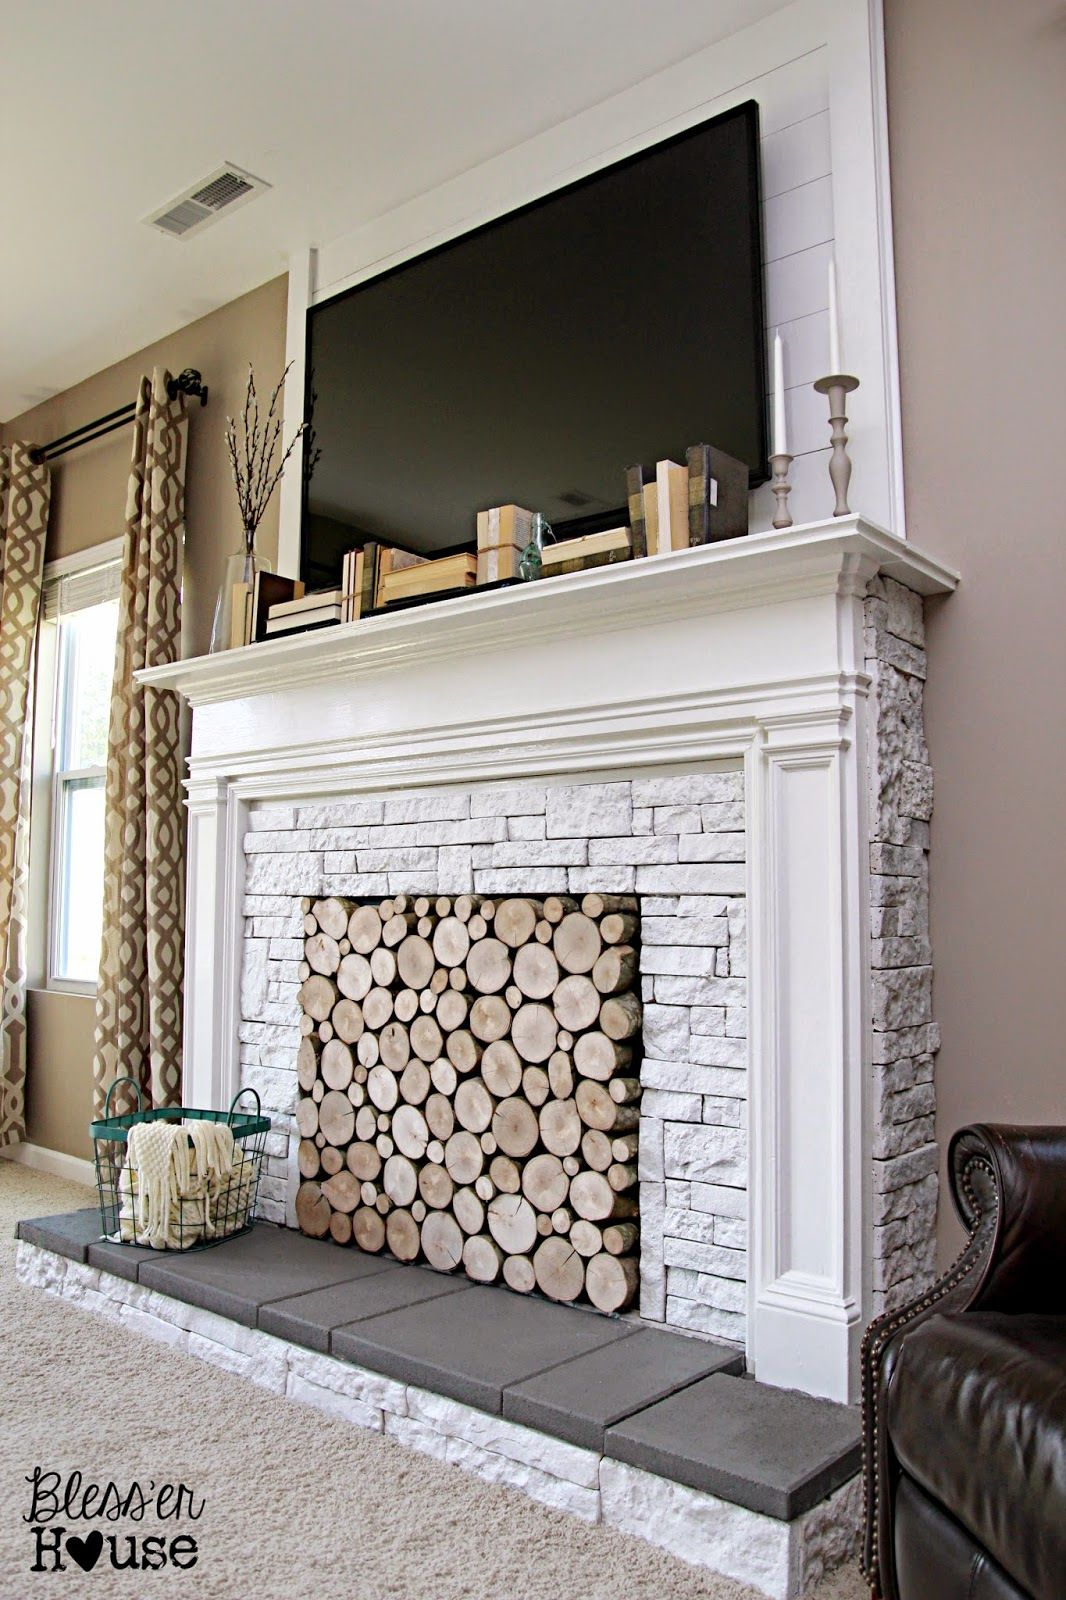 Fire Sprinkler Covers Fireplace Cover Up Ideas Much Prettier Than Ugly